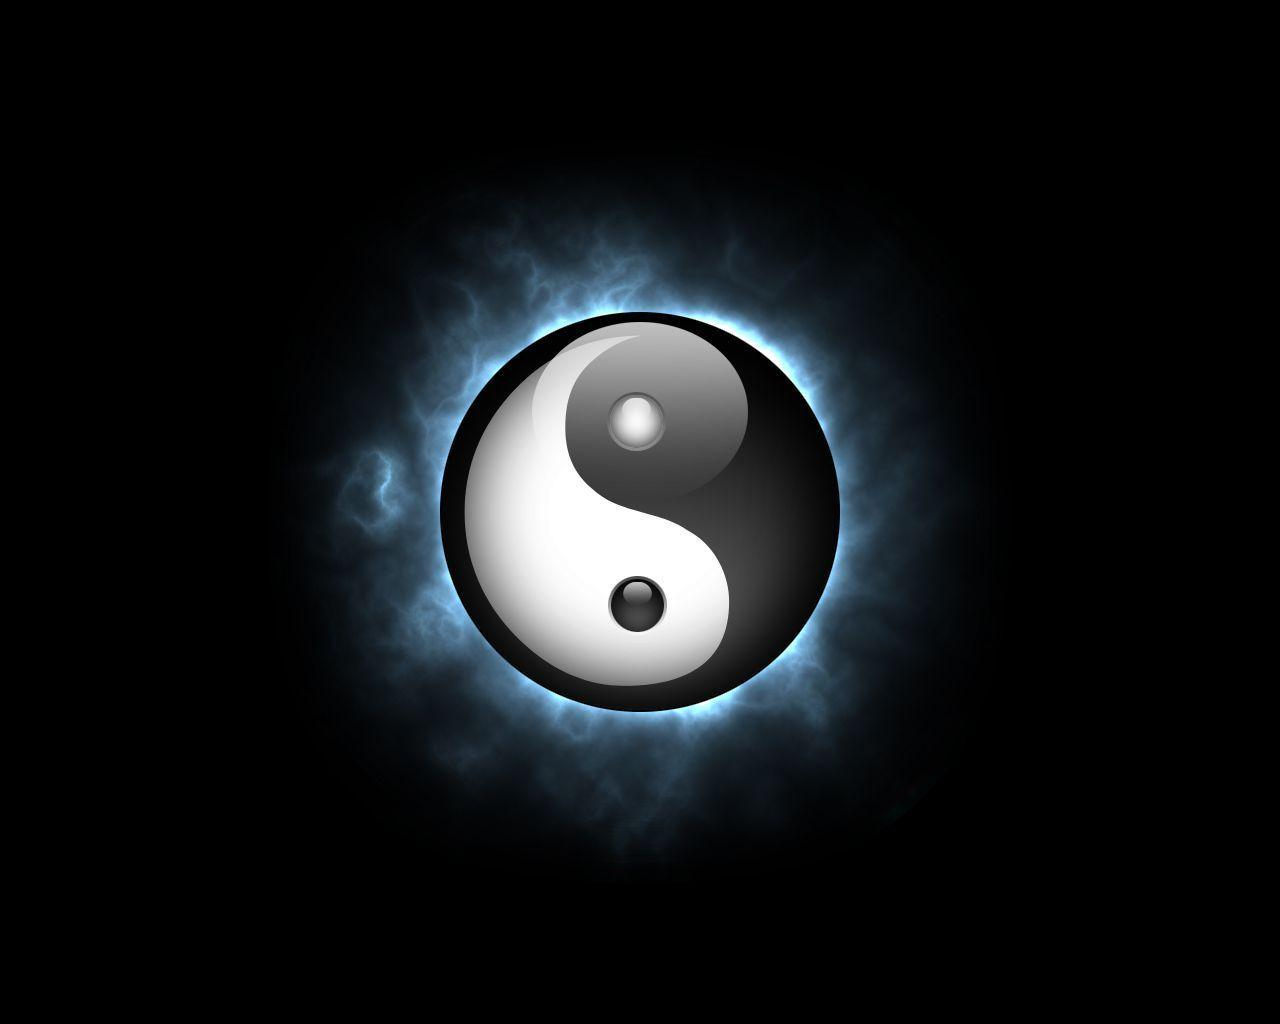 Ying And Yang Wallpapers 1280x1024